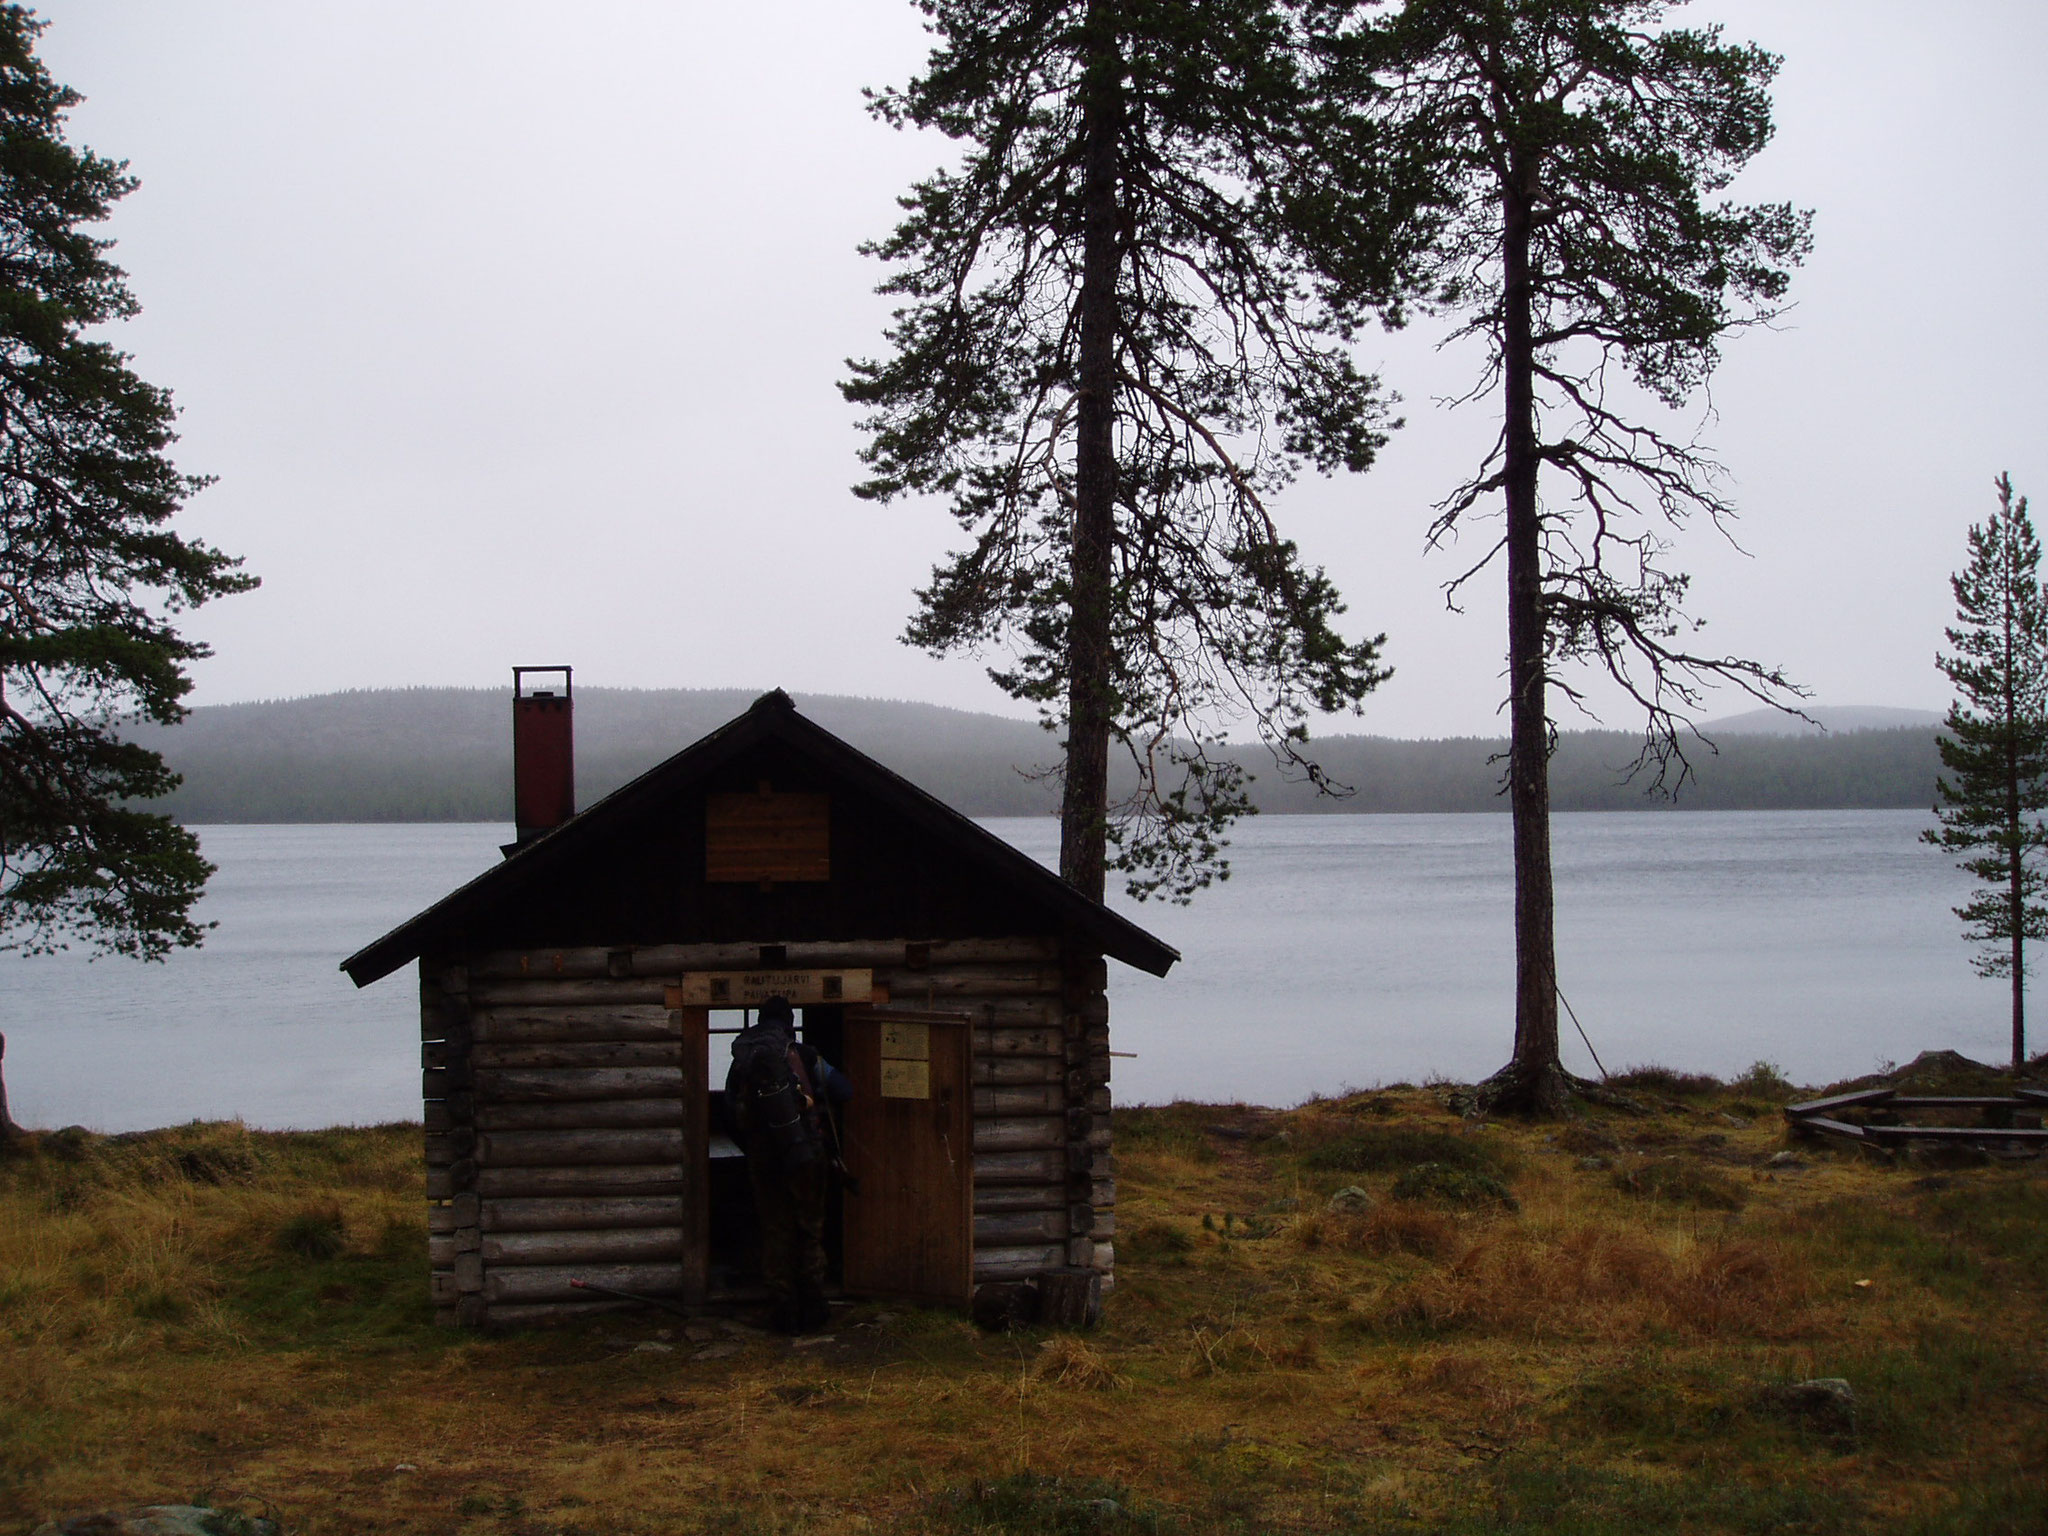 Just another finnish forest hut somewhere in Lapland, by  a lake (Rautujärvi). After a few days hike, those are just the coziest places on Earth.